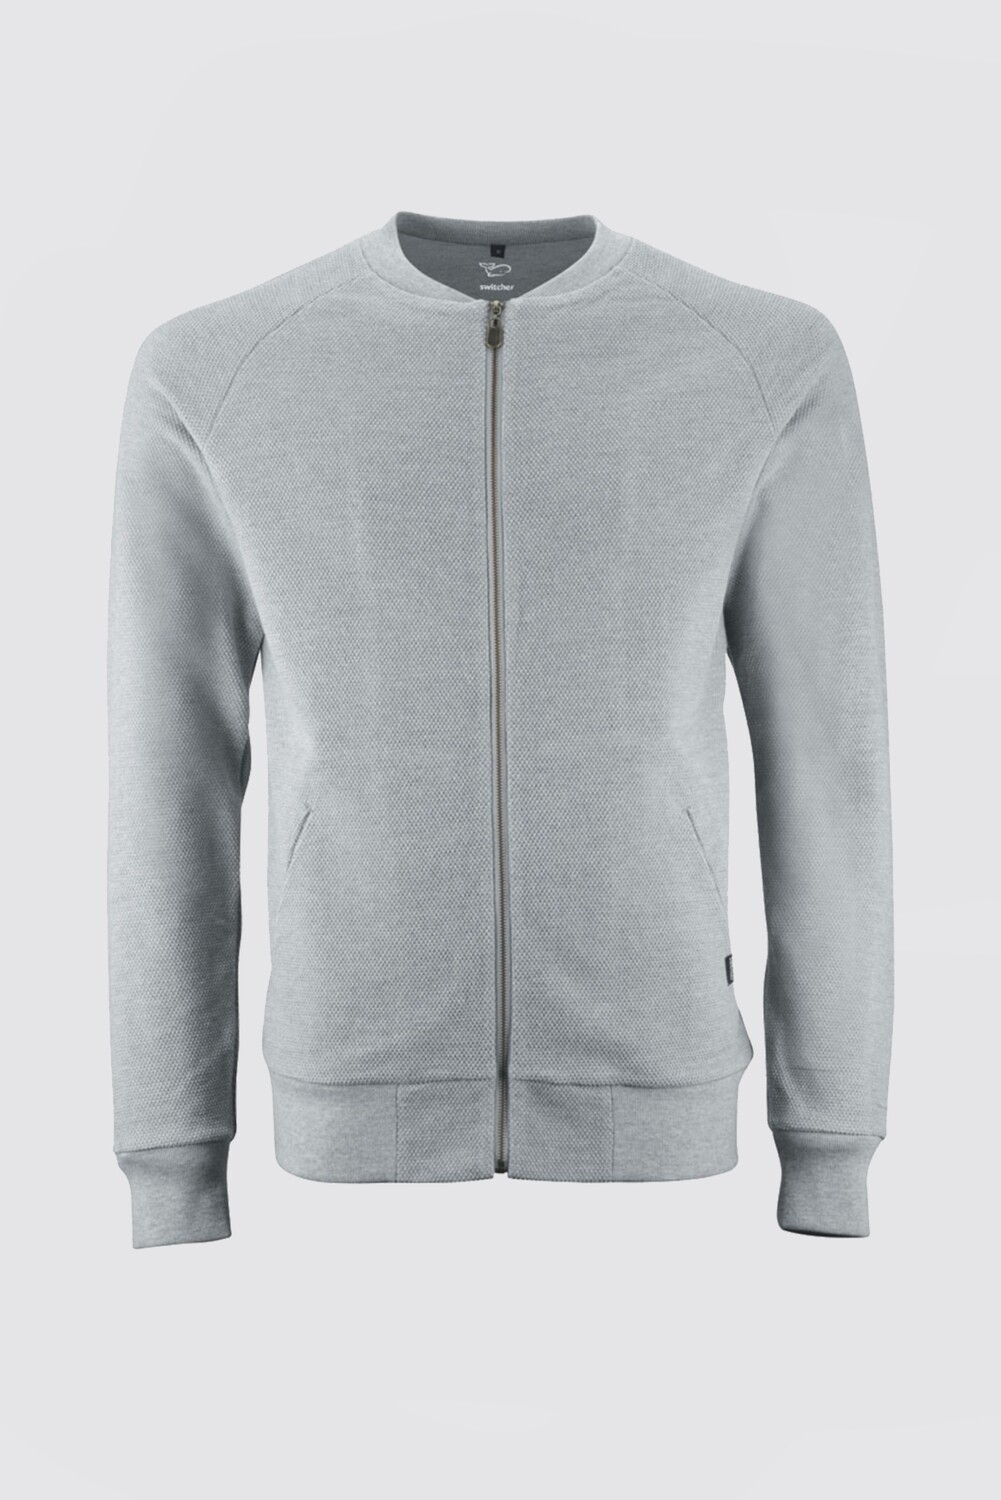 Switcher Honey Comb sweat jacket Milos